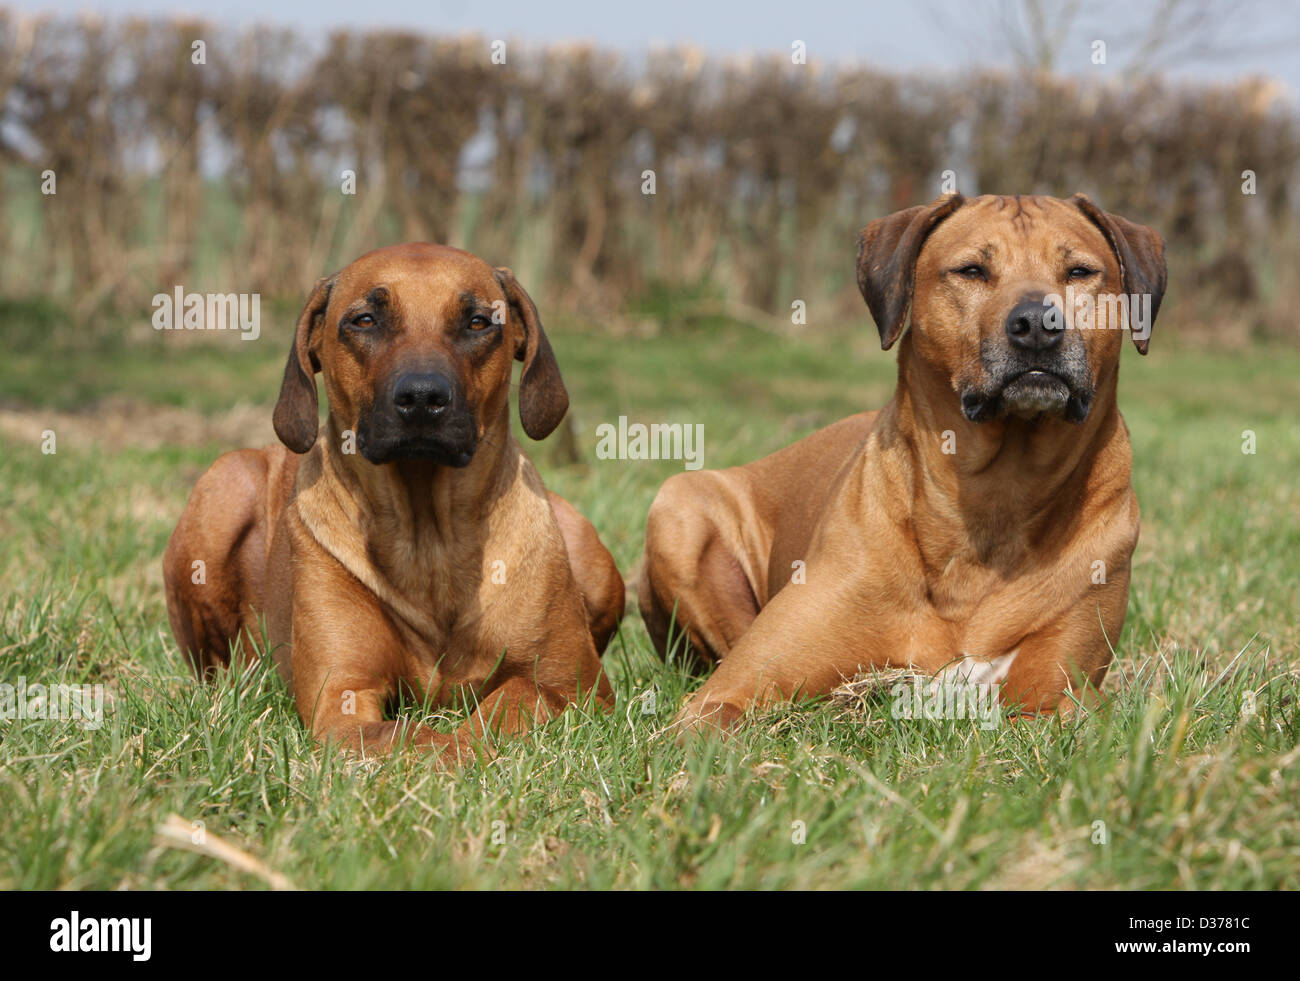 Dog Rhodesian Ridgeback / African Lion Hound two adults lying in a meadow - Stock Image